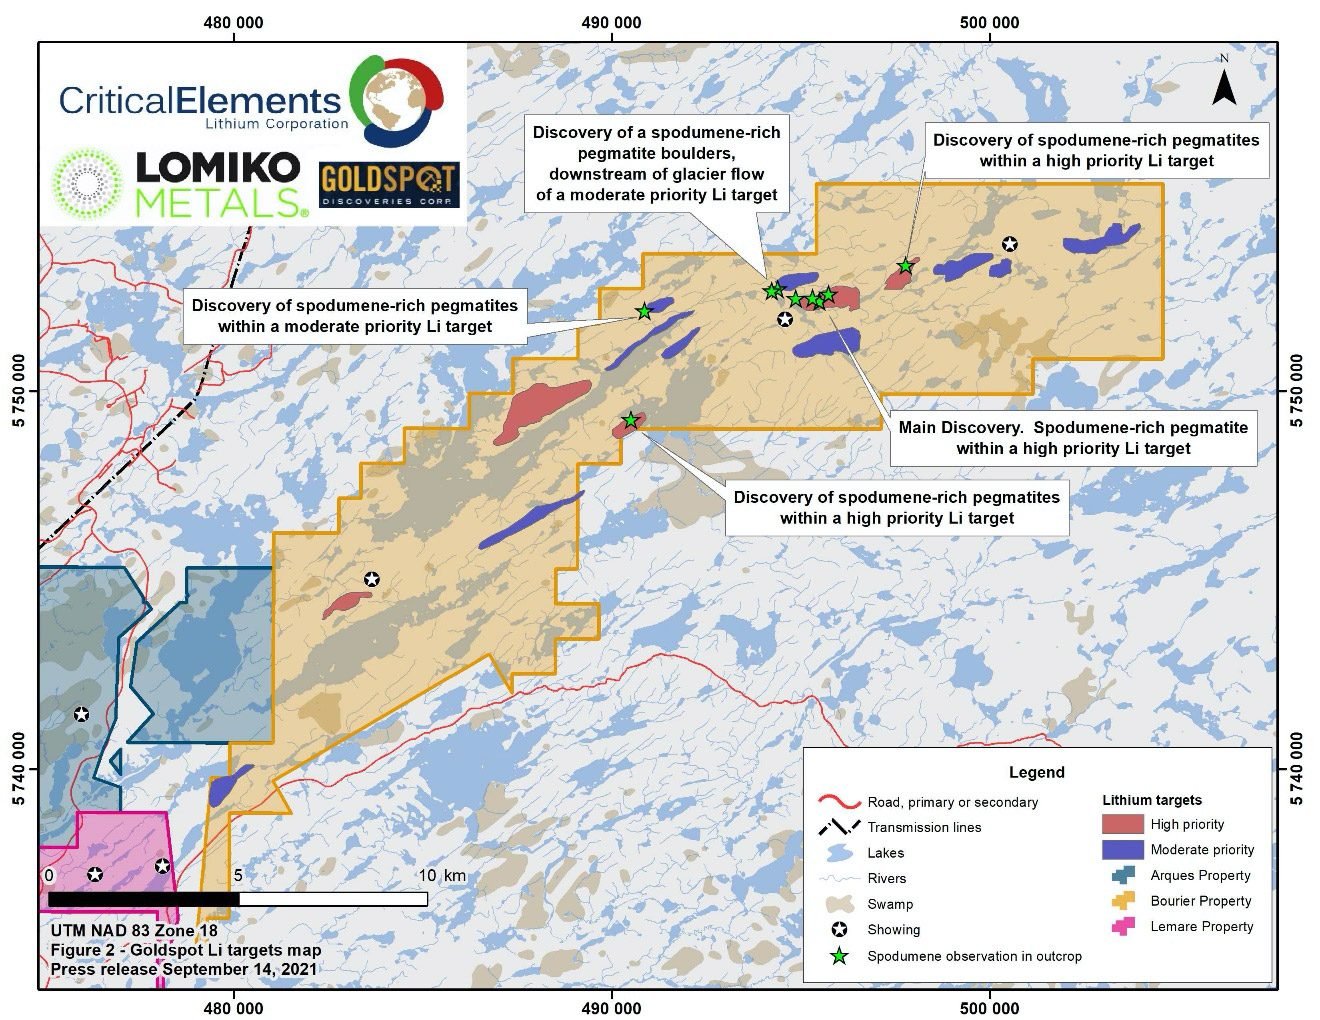 Lithium targets and location of new spodumene-rich pegmatites within Critical Elements and Lomiko Metals' Bourier claims.